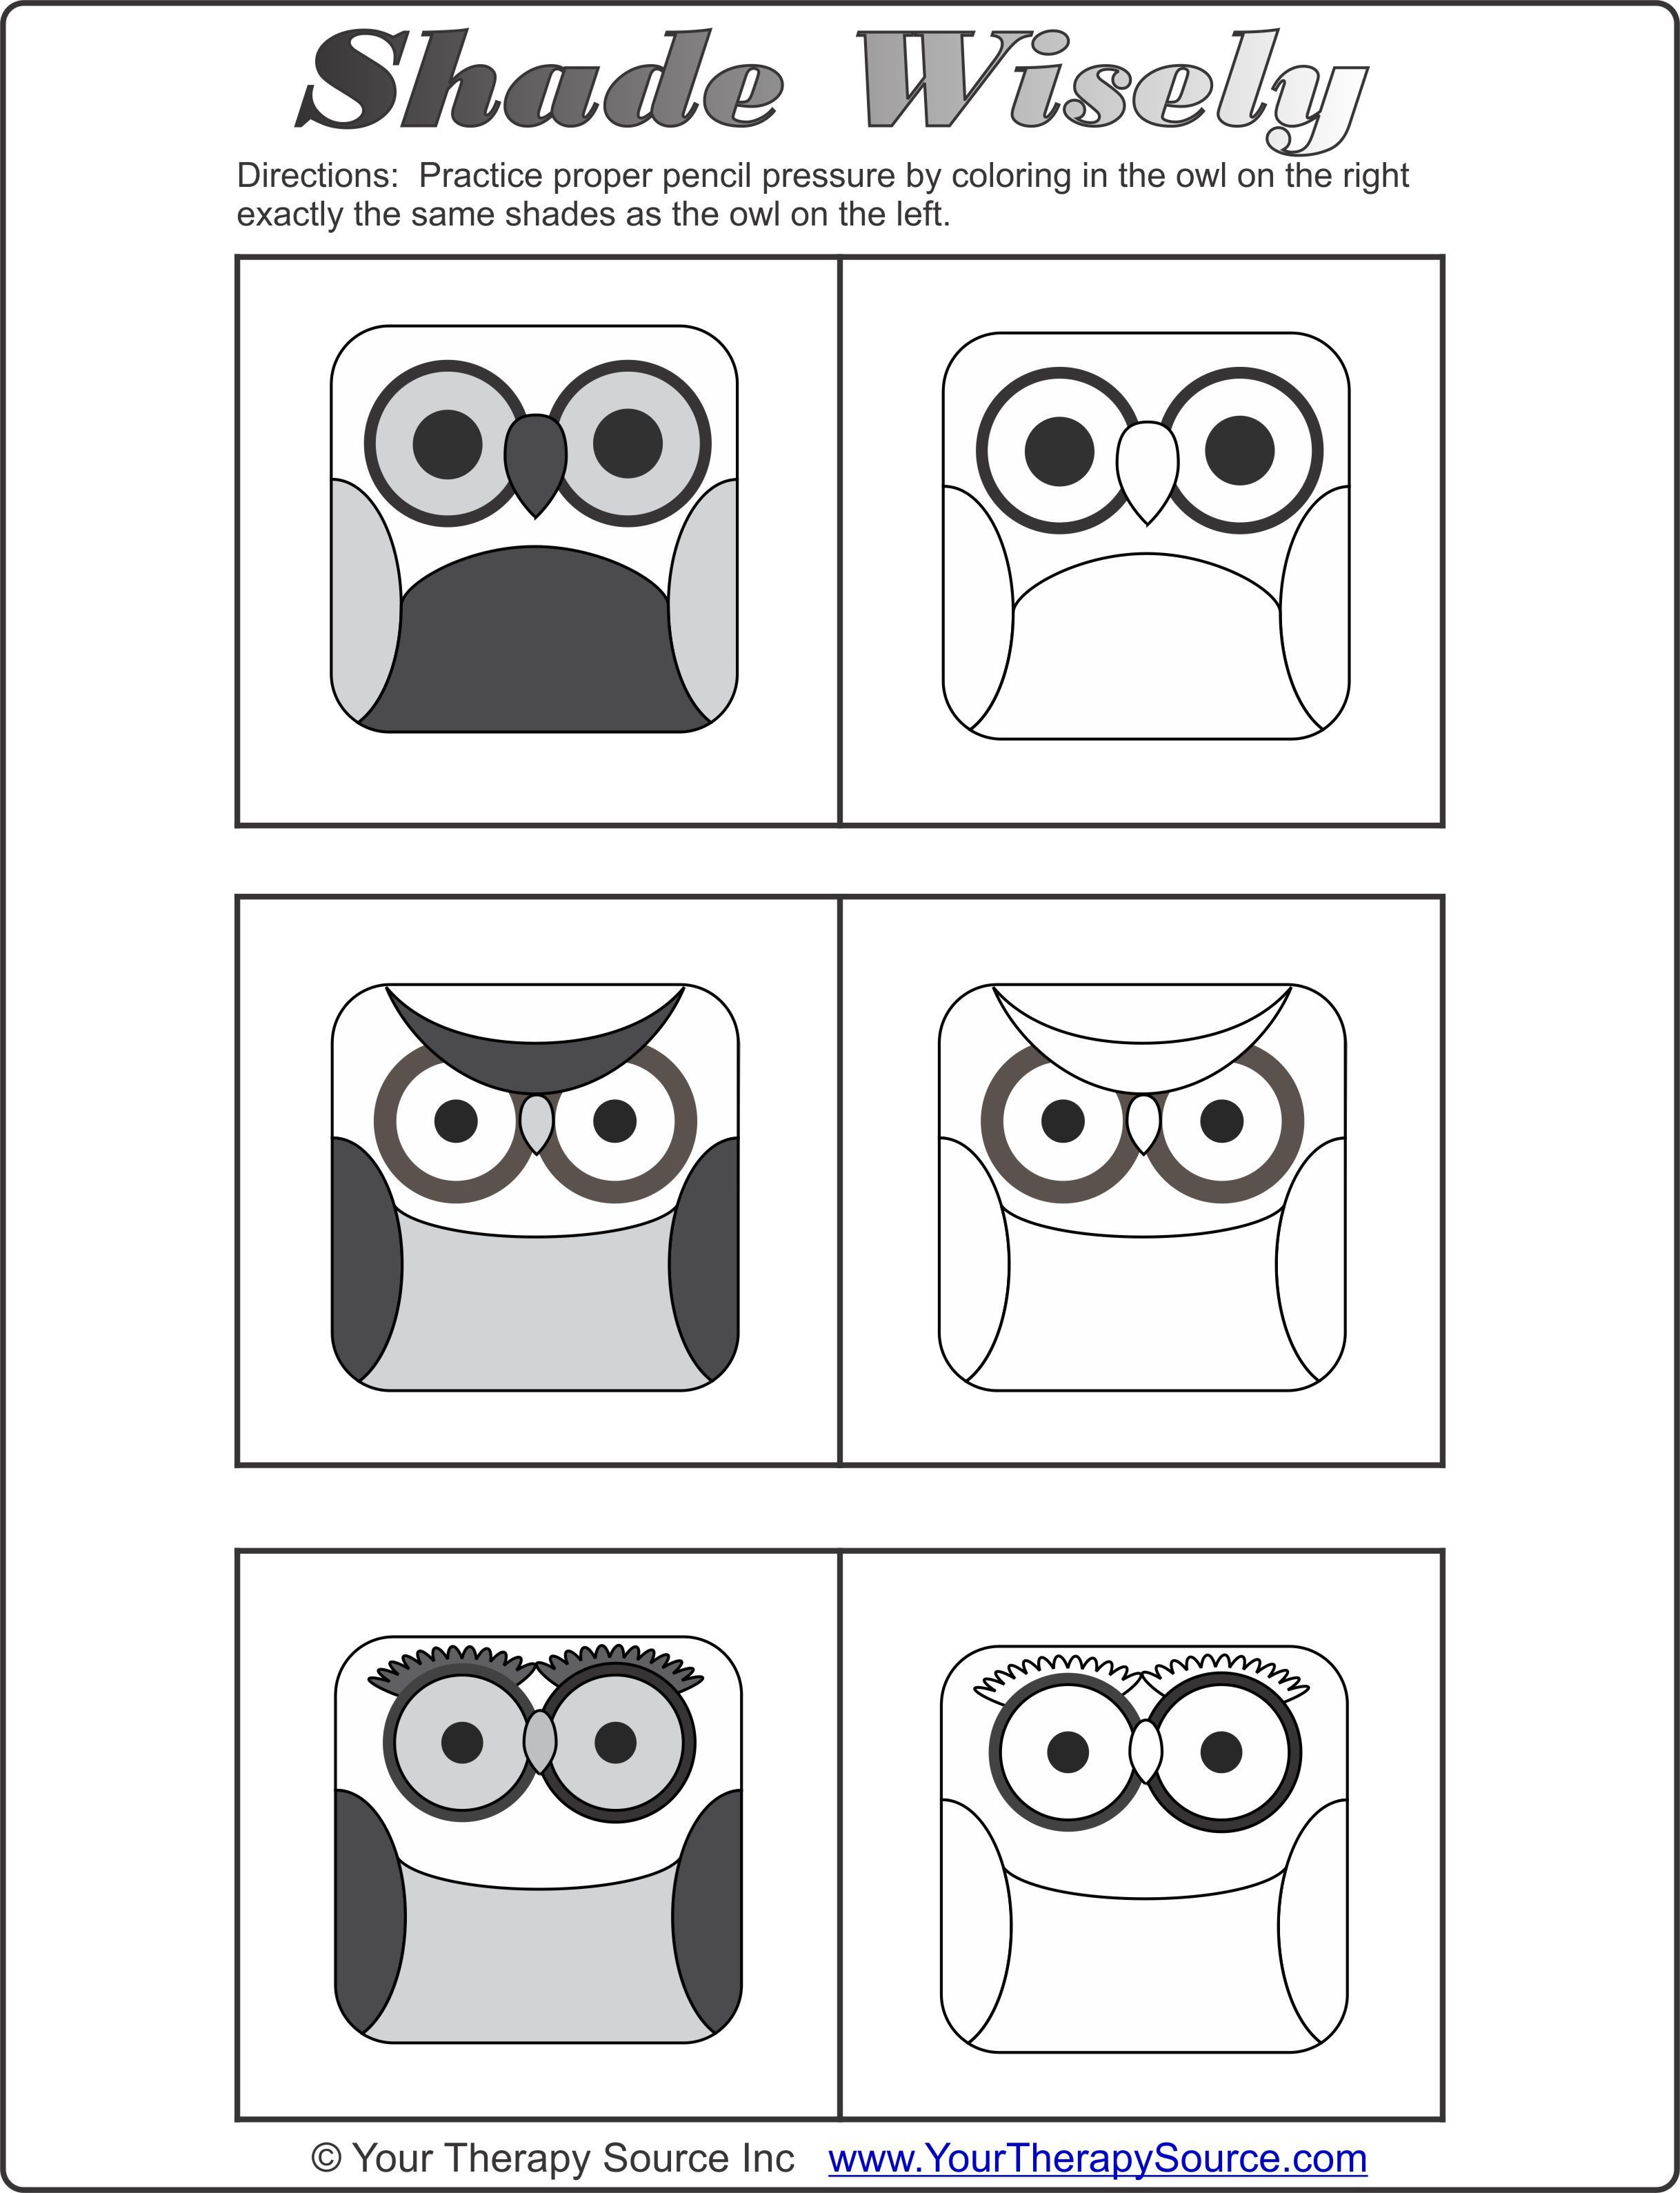 Students Can Practice Pressing Light Versus Hard To Shade The Owl Pictures You Can Download It